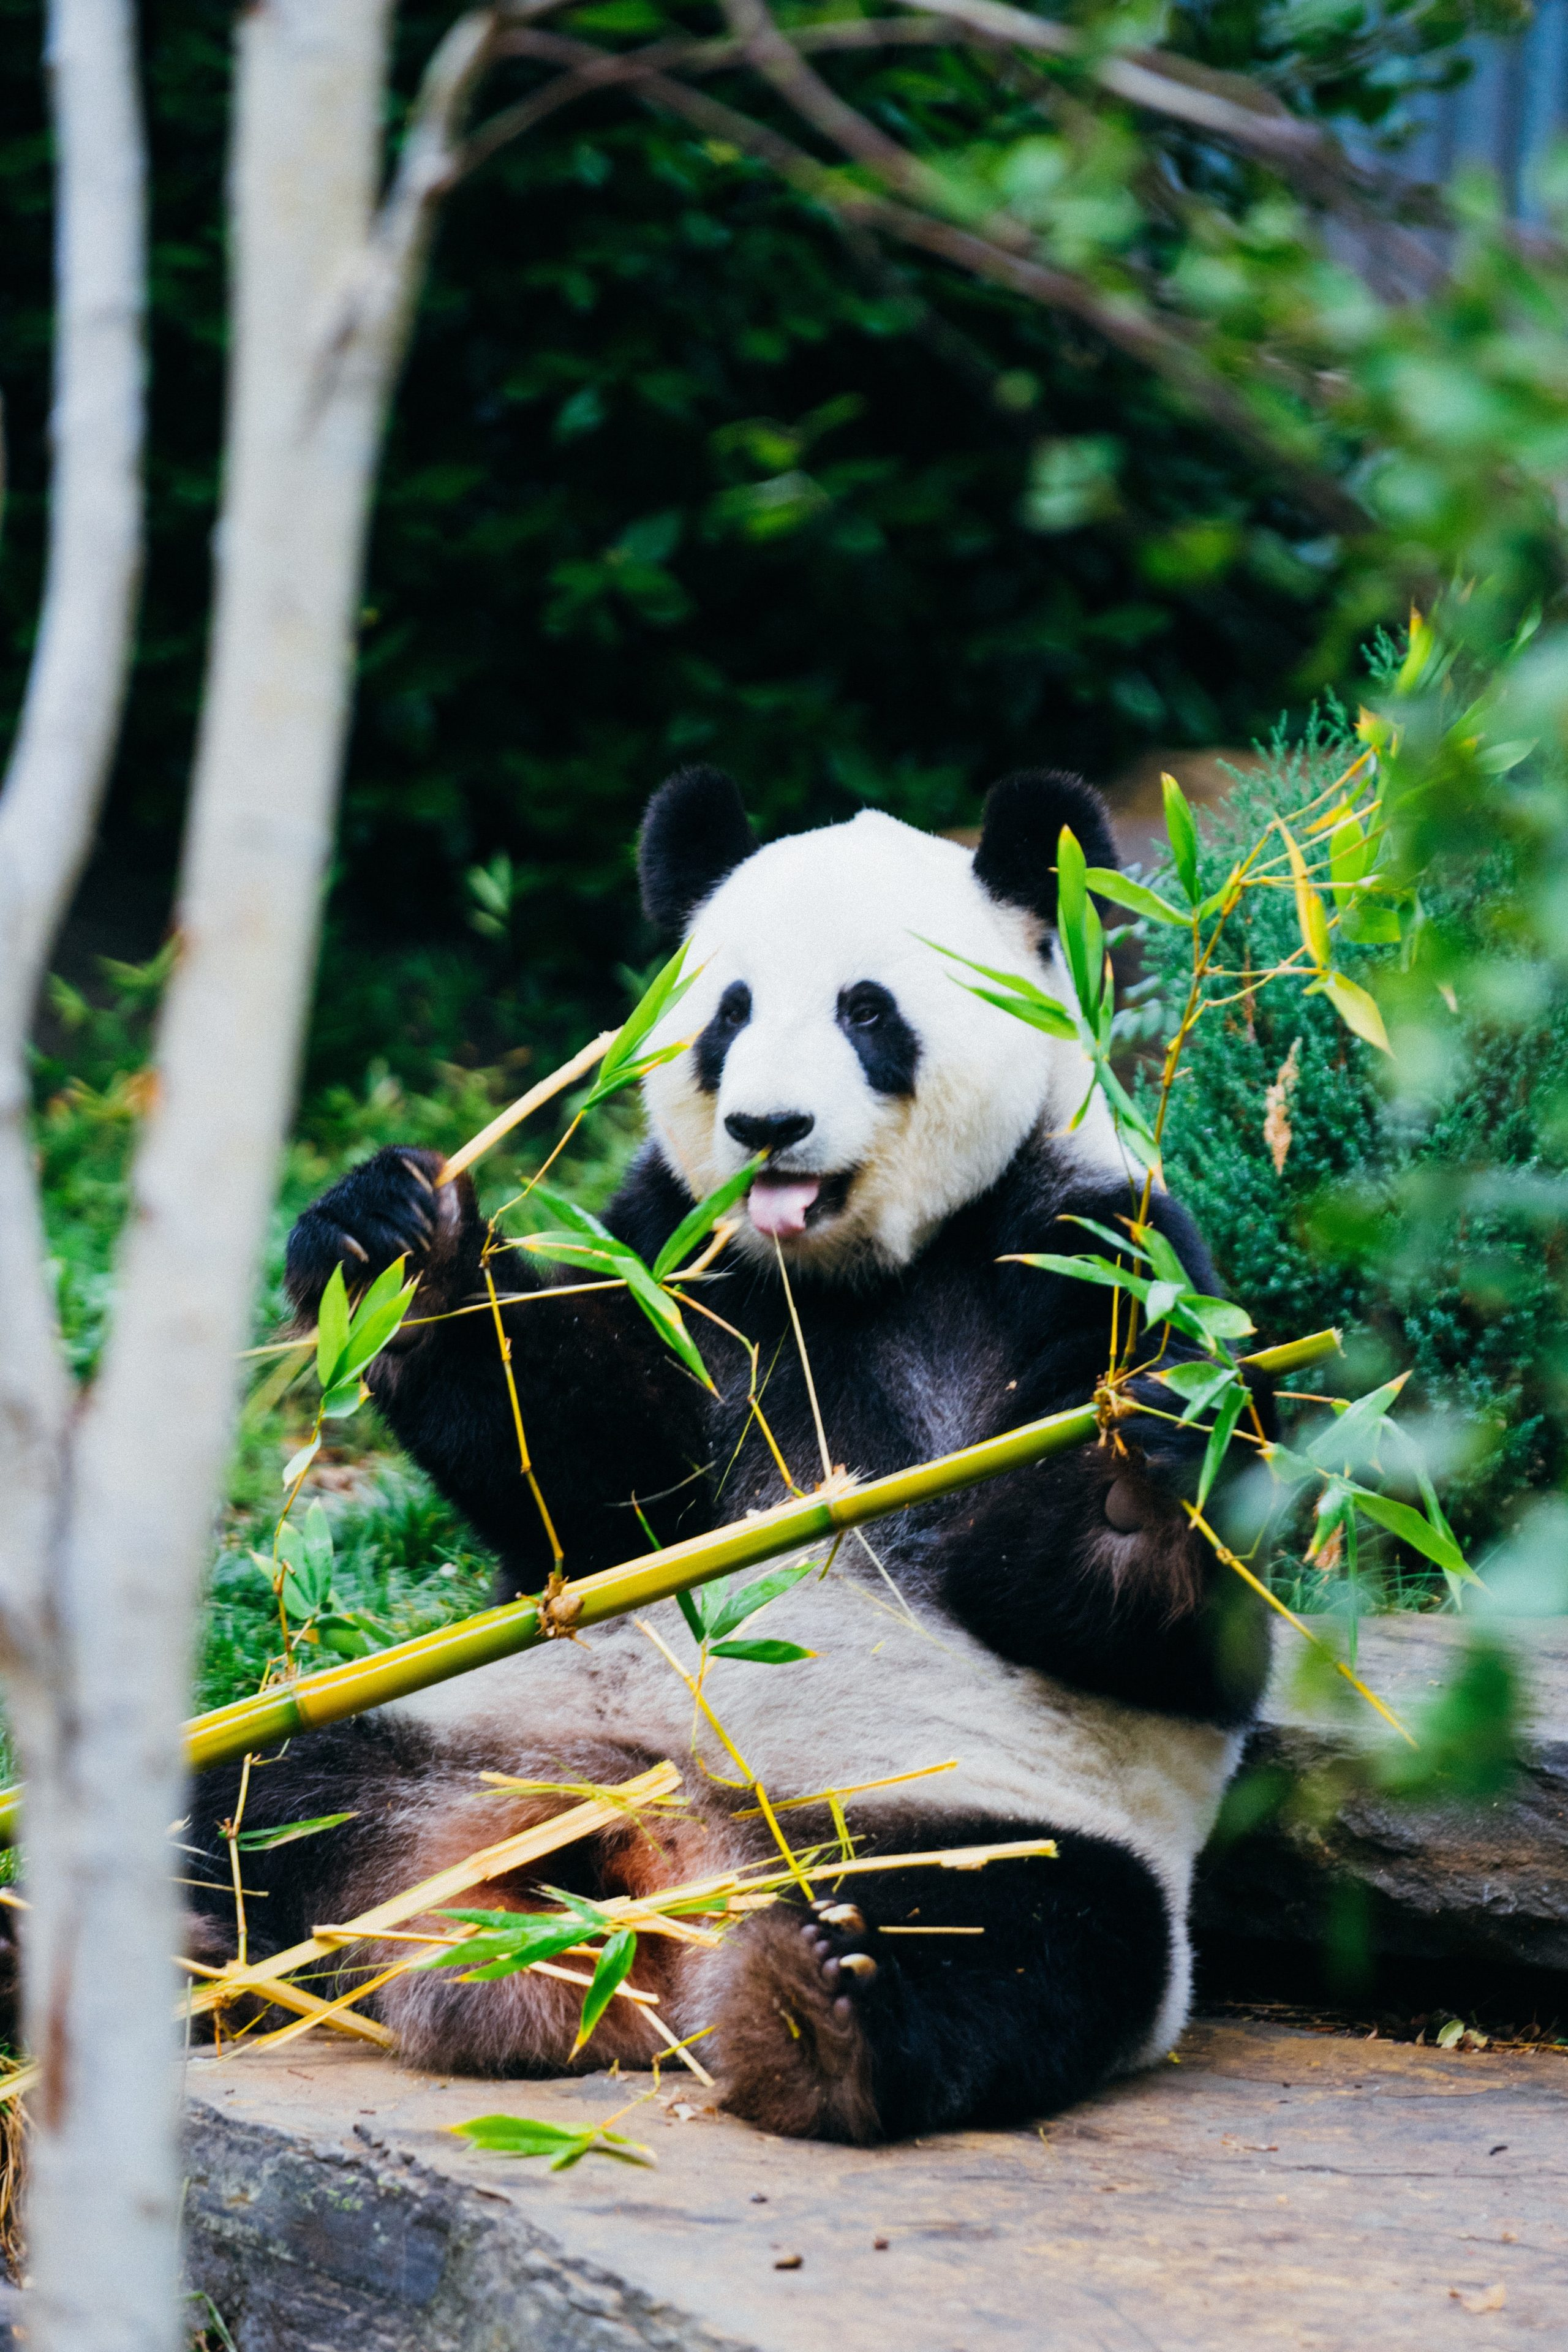 image of panda to illustrate9 things you need to know about niche marketing